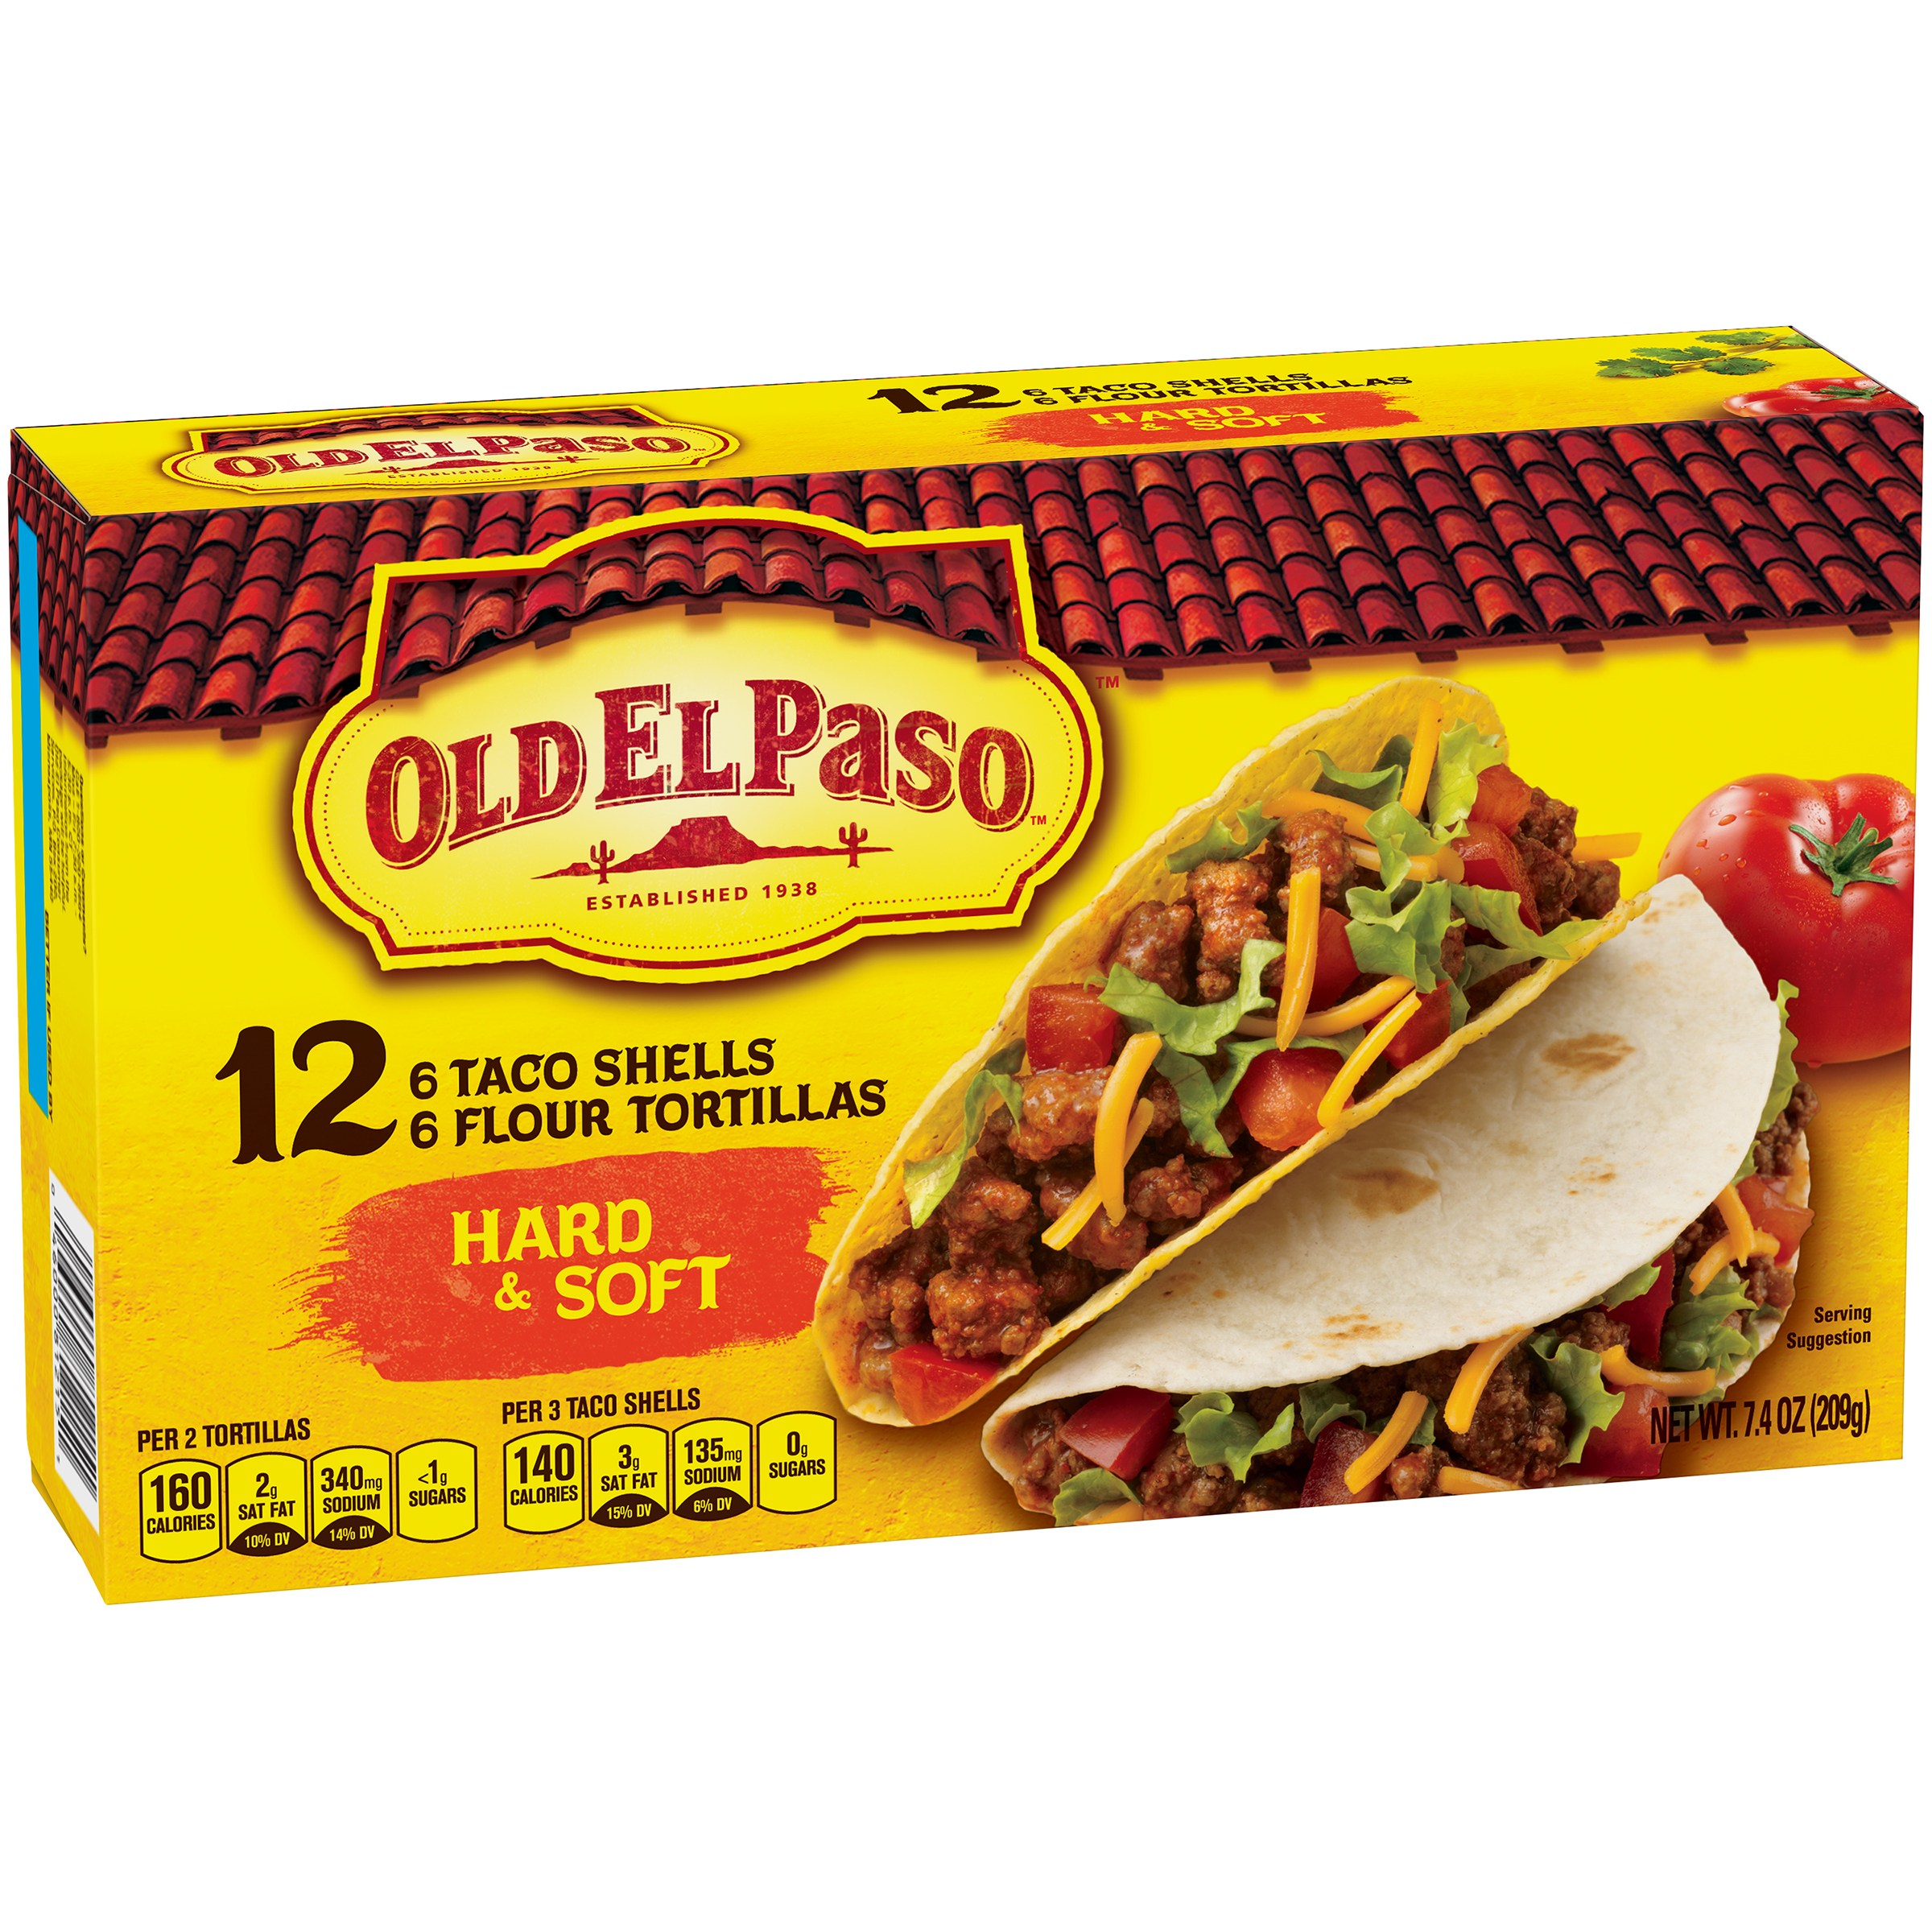 Old El Paso Hard & Soft Taco Shells and Flour Tortillas, 12 count, 7.4 oz by General Mills Sales, Inc.